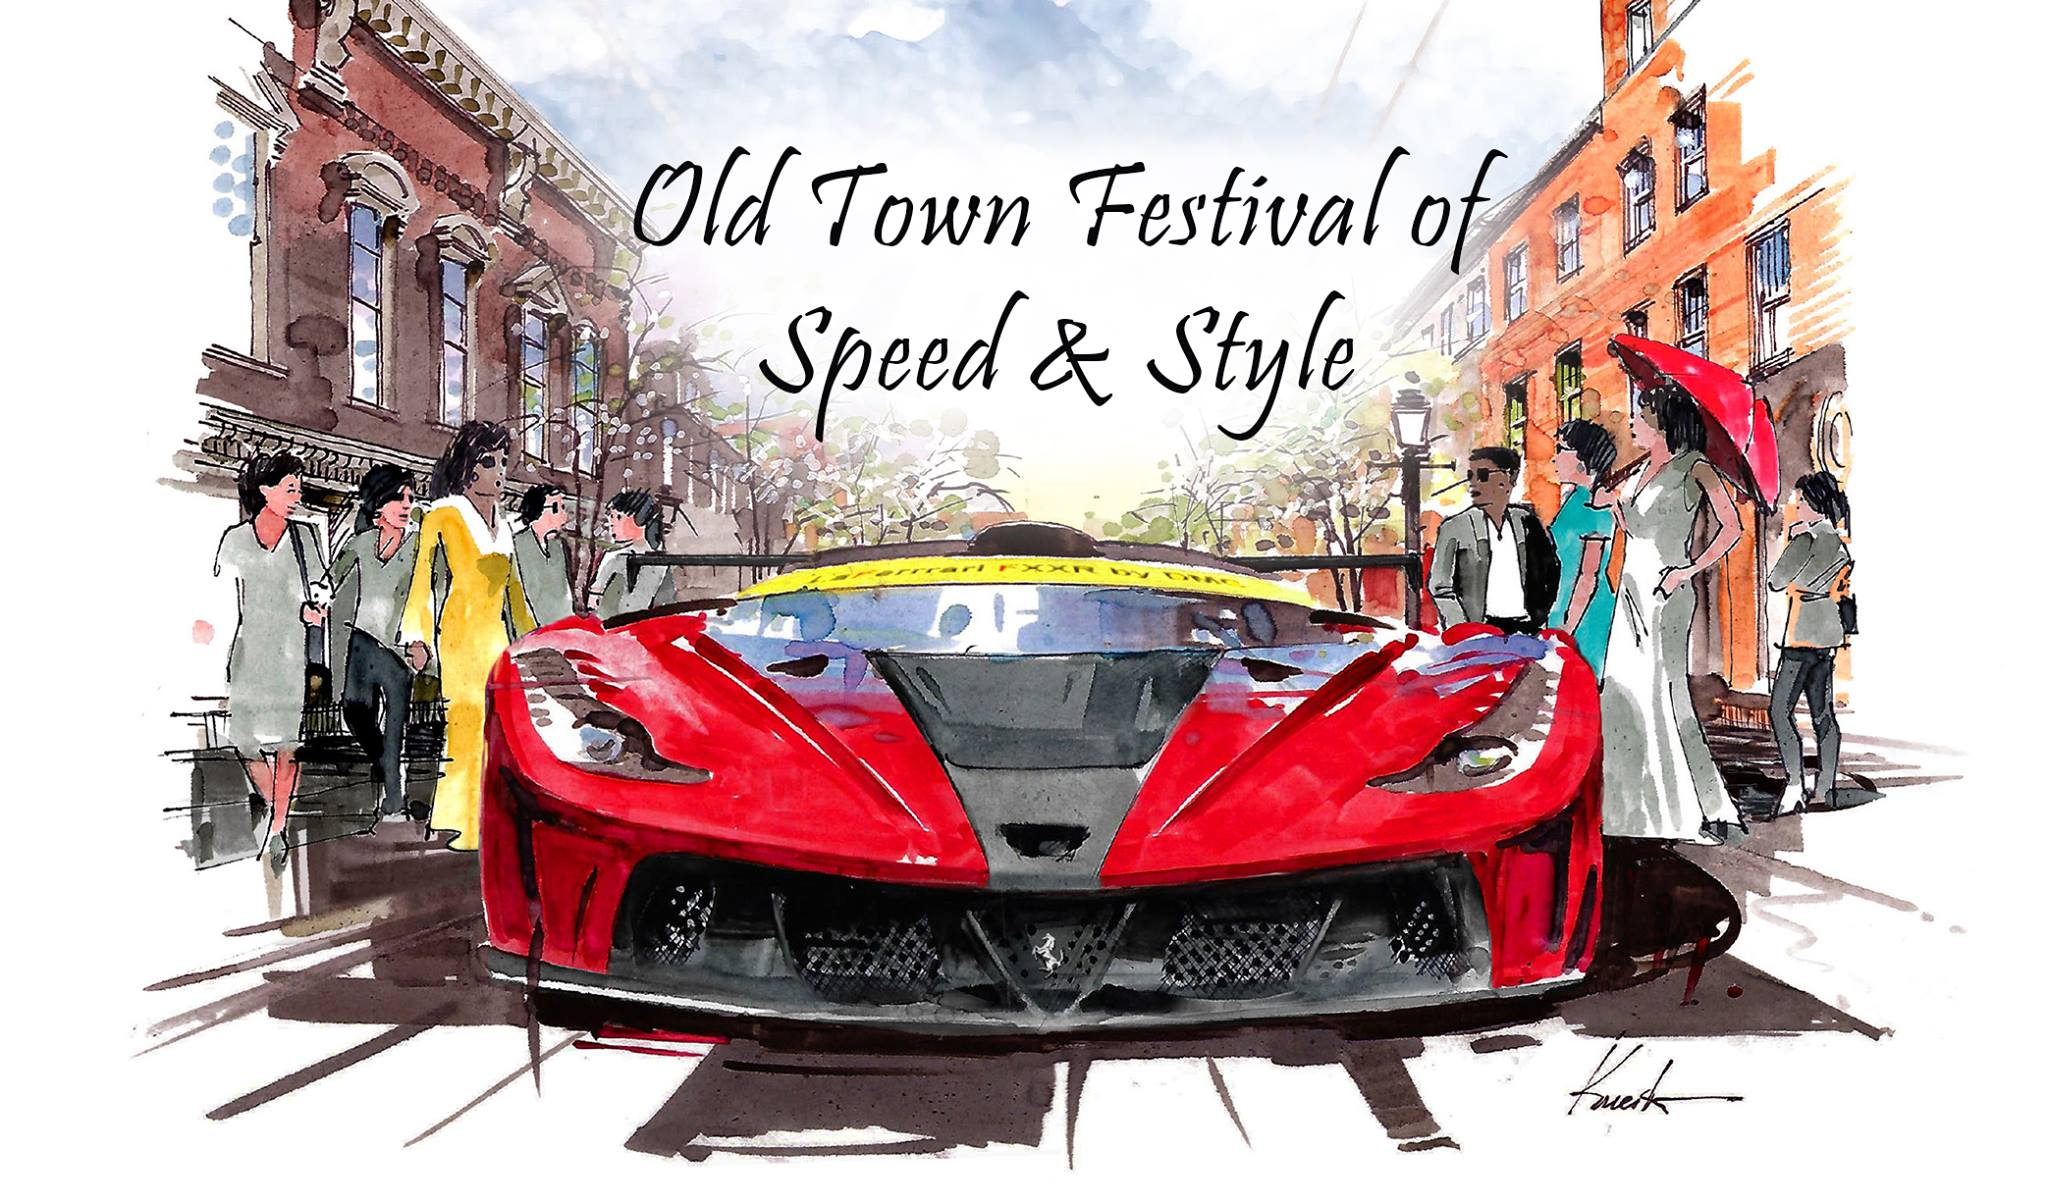 First Annual Old Town Festival of Speed & Style